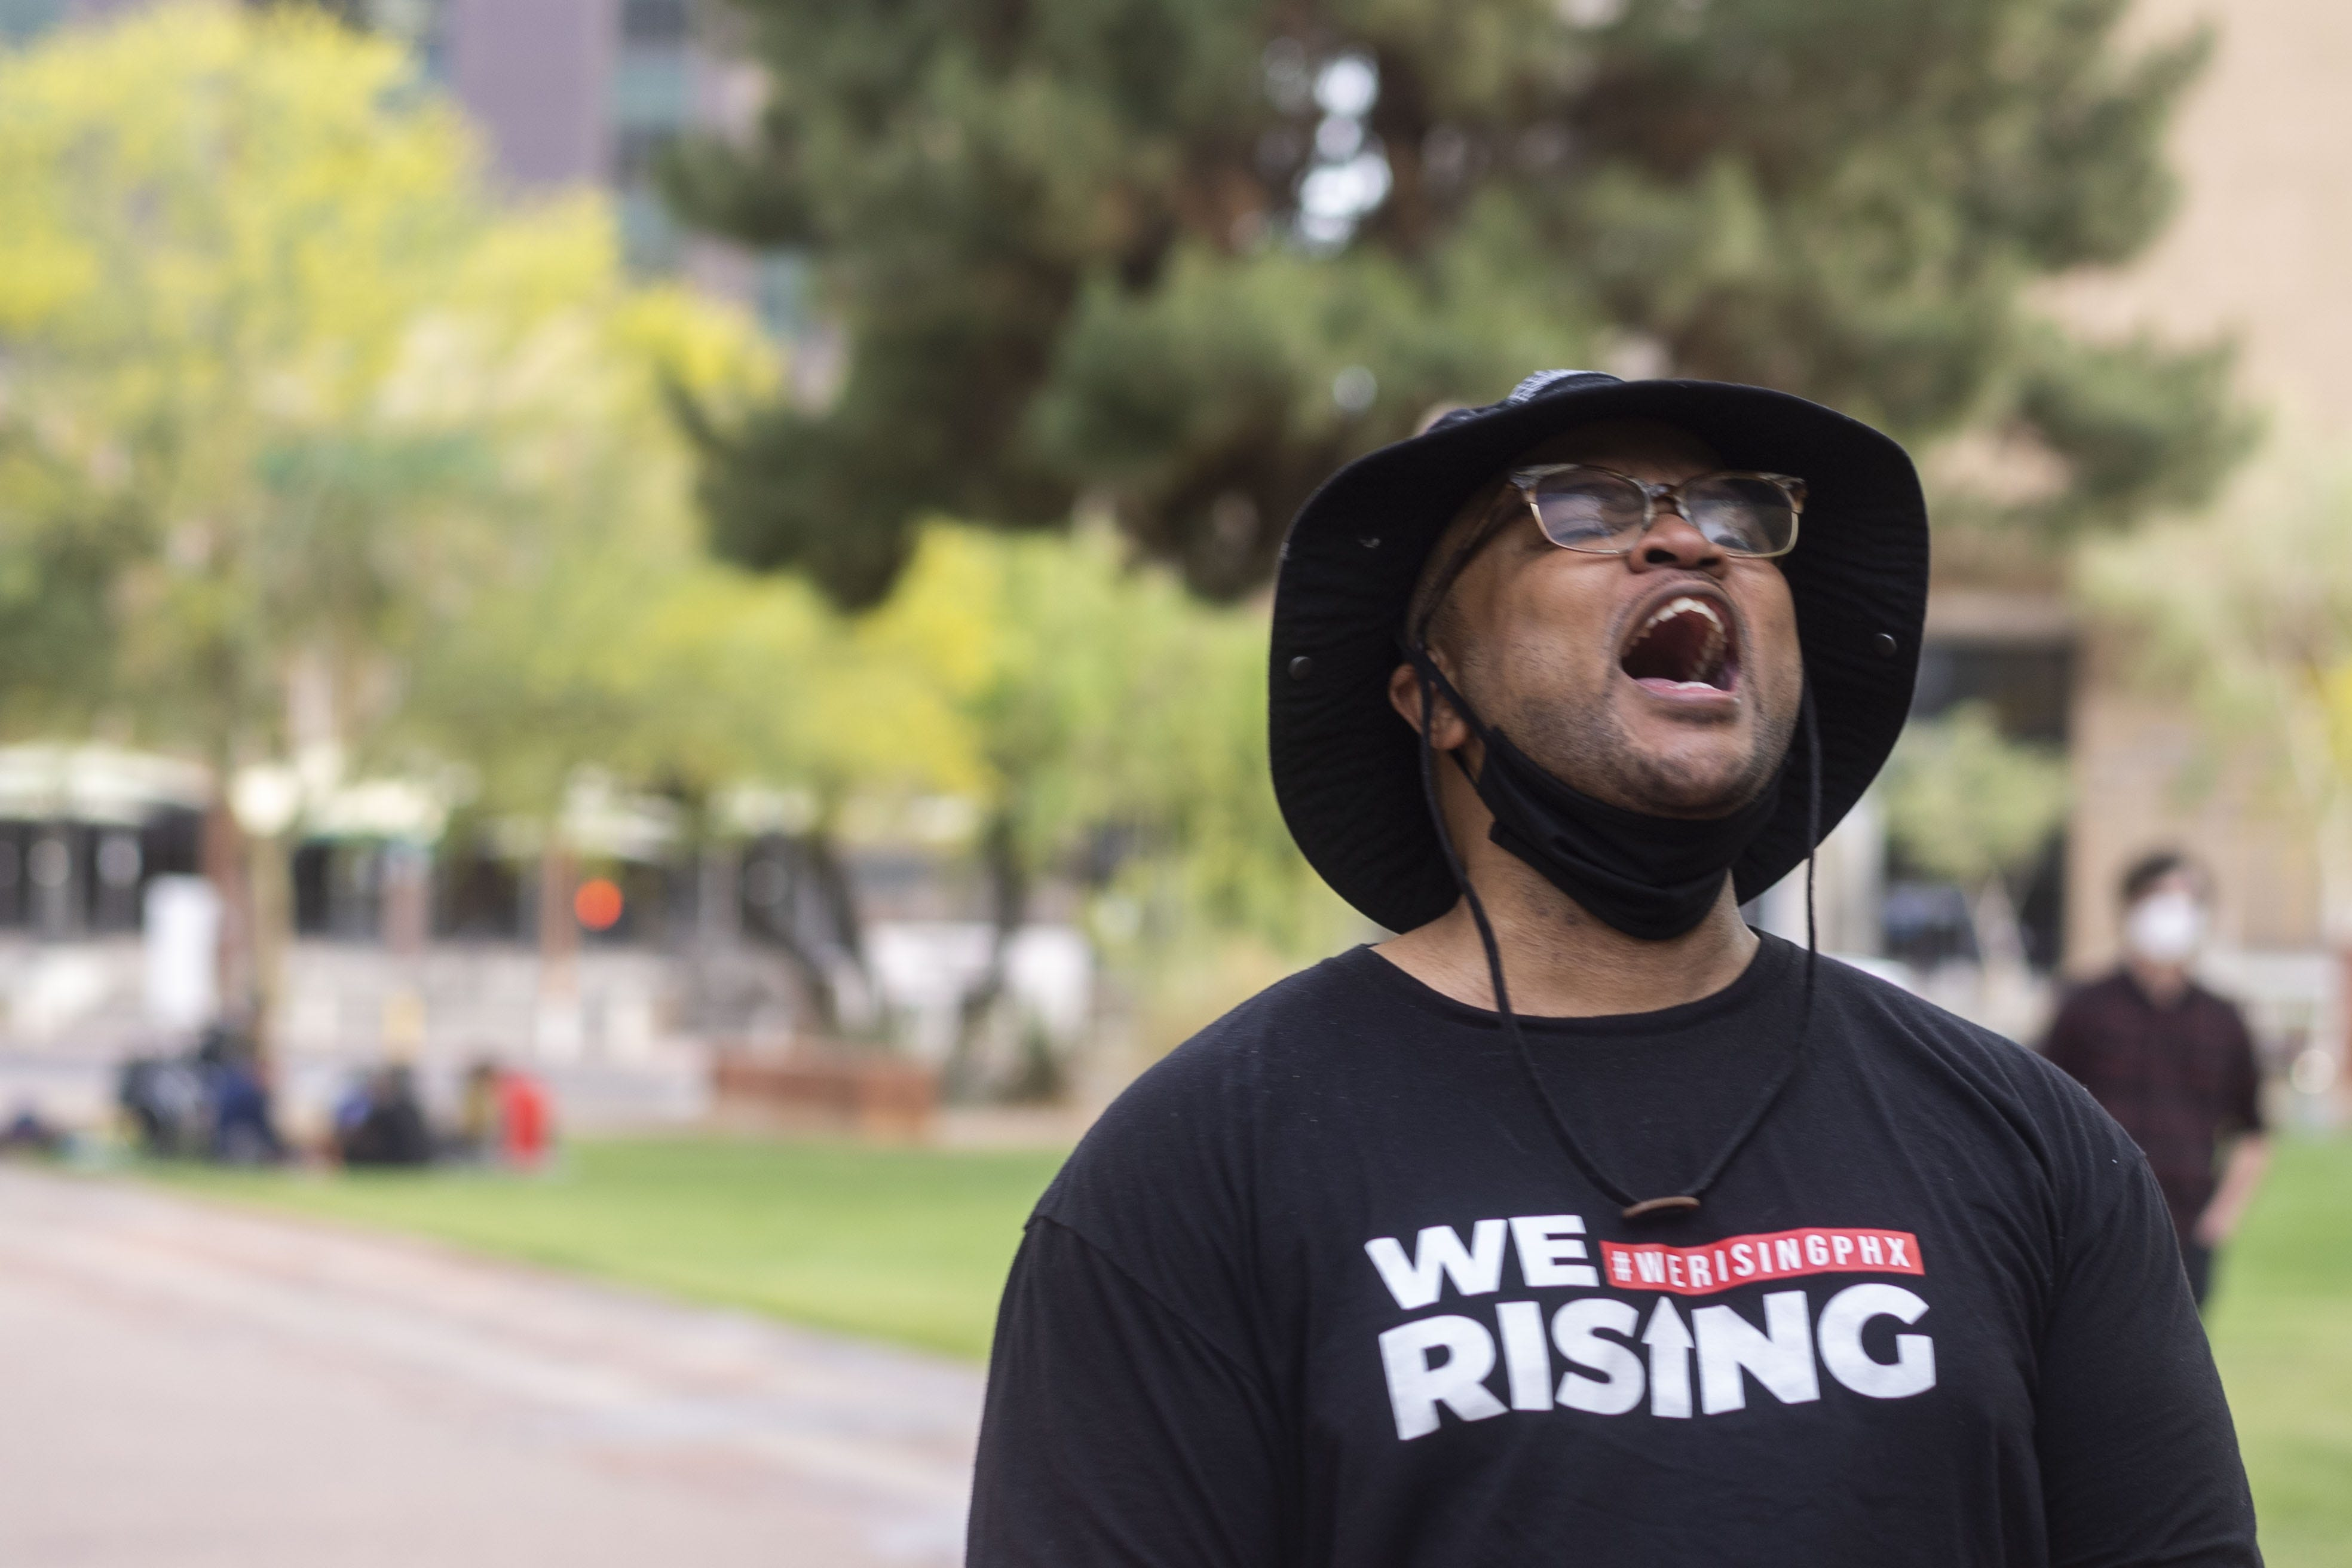 Jacob Raiford speaks to the crowd at the rally against police brutality at Cesar Chavez Plaza at Phoenix City Hall on Washington Street in downtown Phoenix on April 15, 2021.